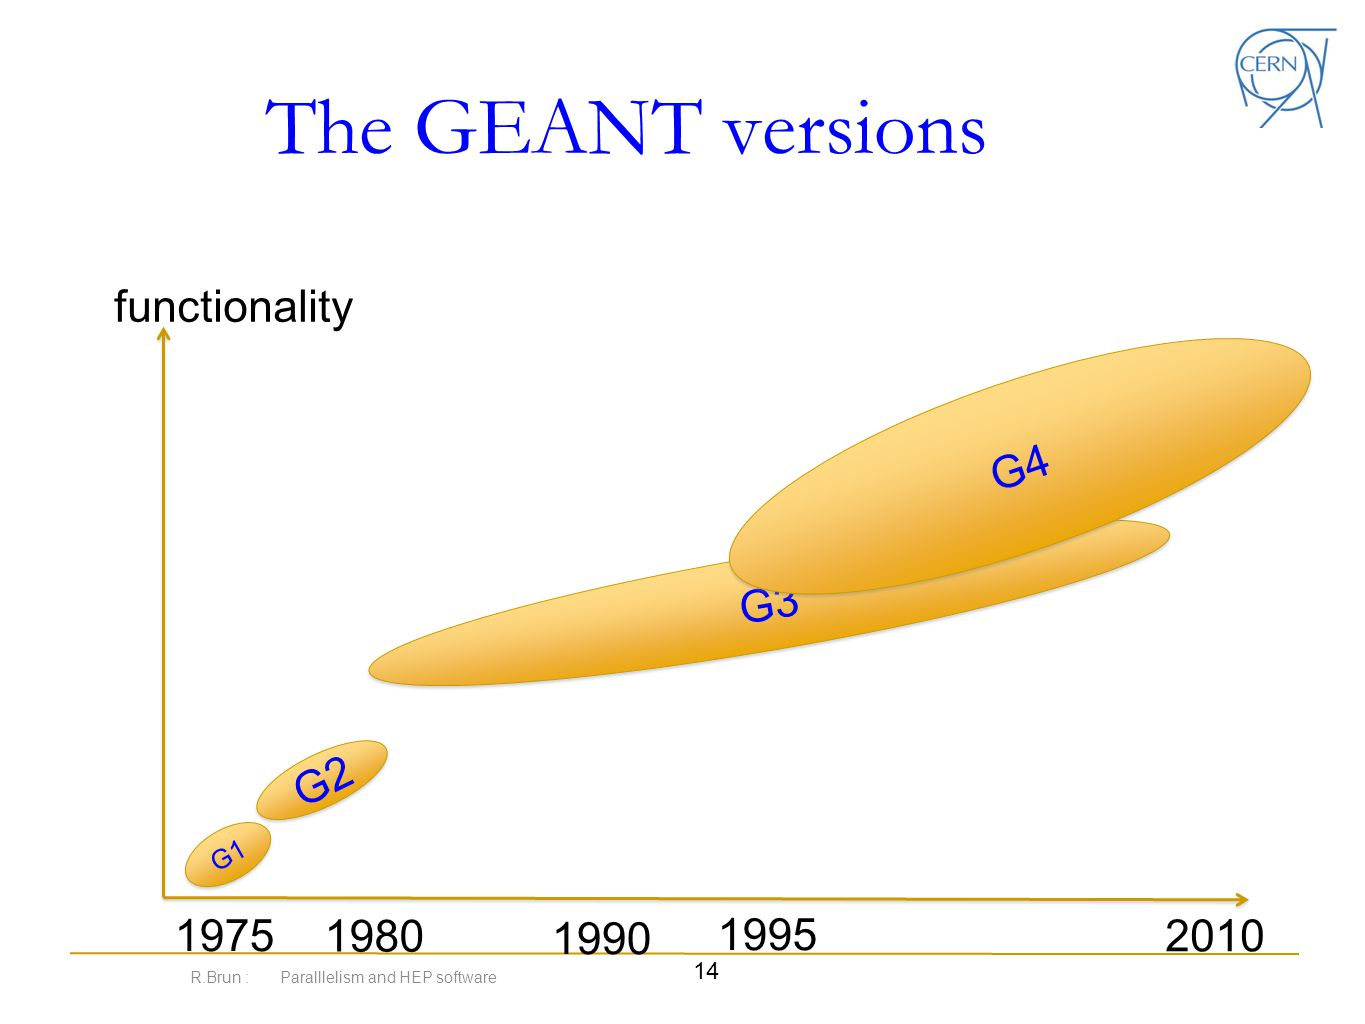 The GEANT versions R.Brun : Paralllelism and HEP software 14 1975 1980 1990 1995 2010 G1 G2 G3 G4 functionality